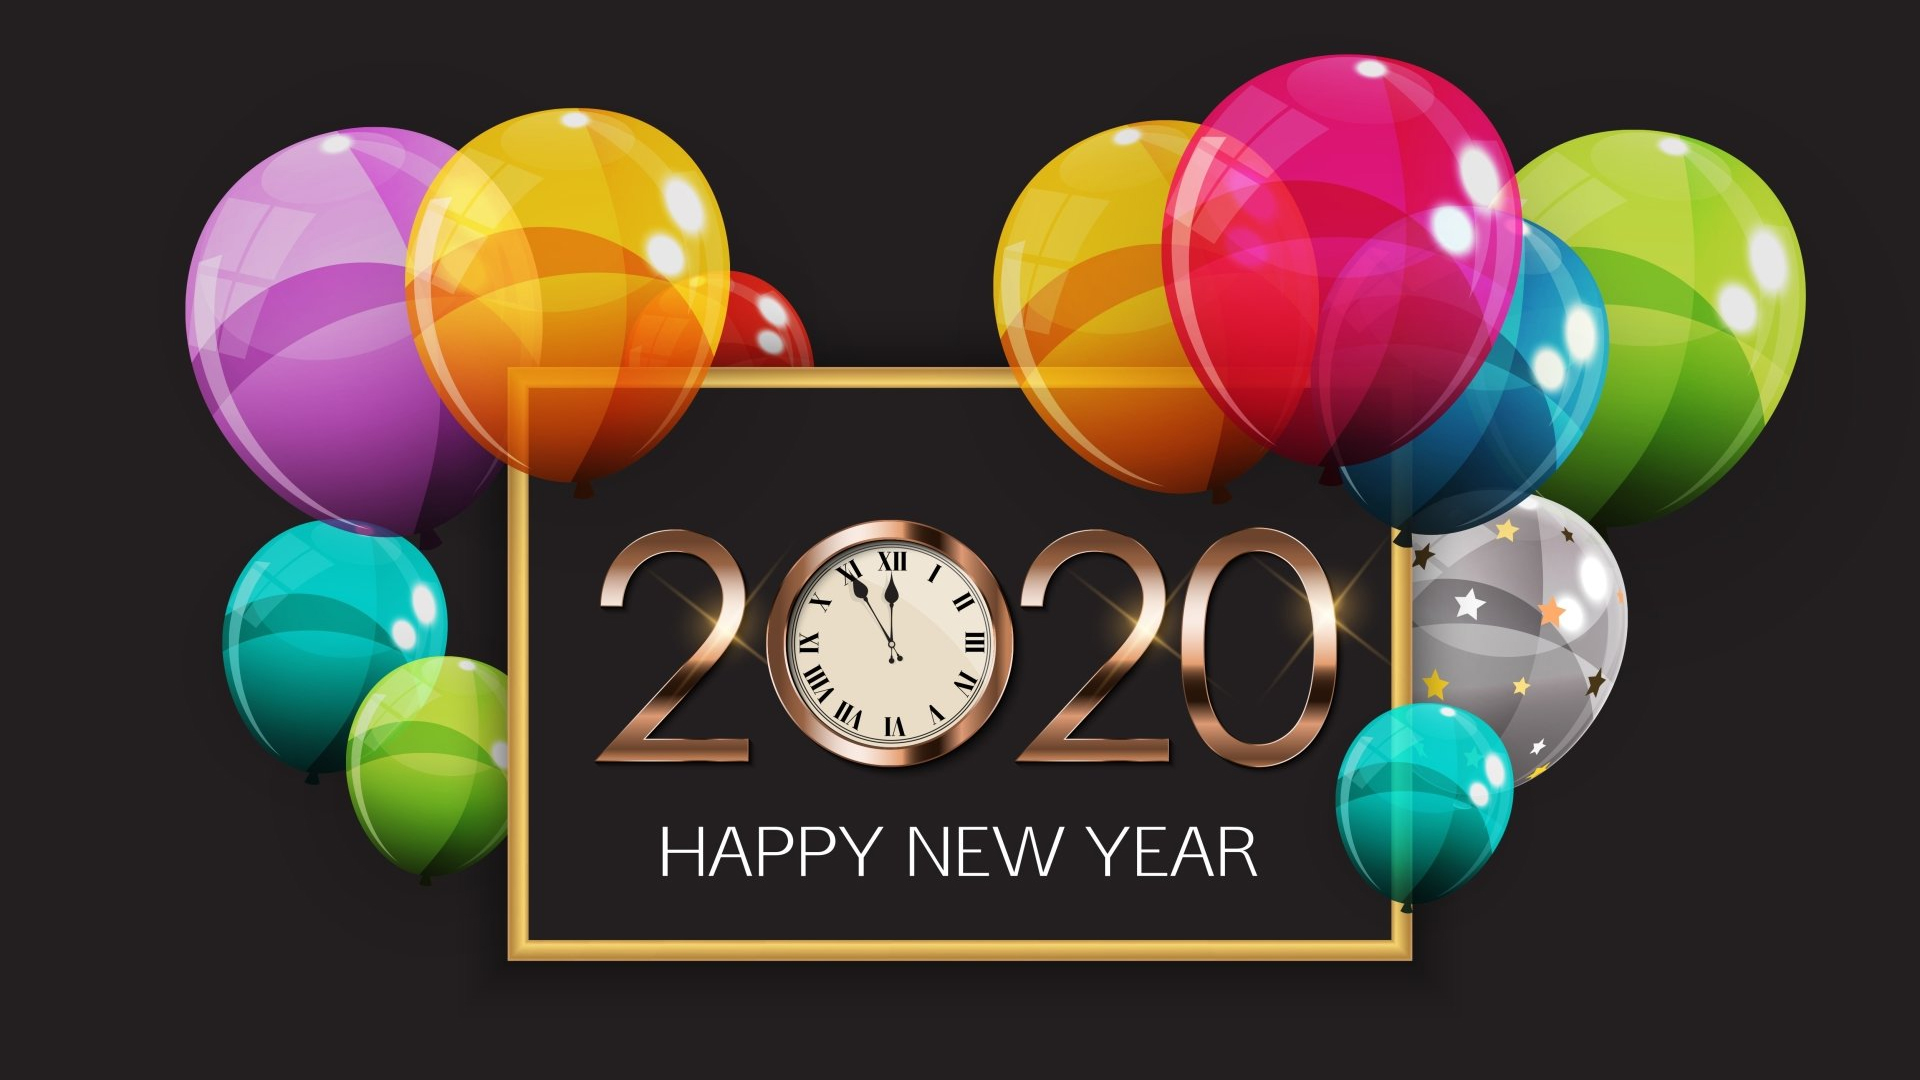 30 Happy New Year Images 2020   Wallpapers Download 1920x1080